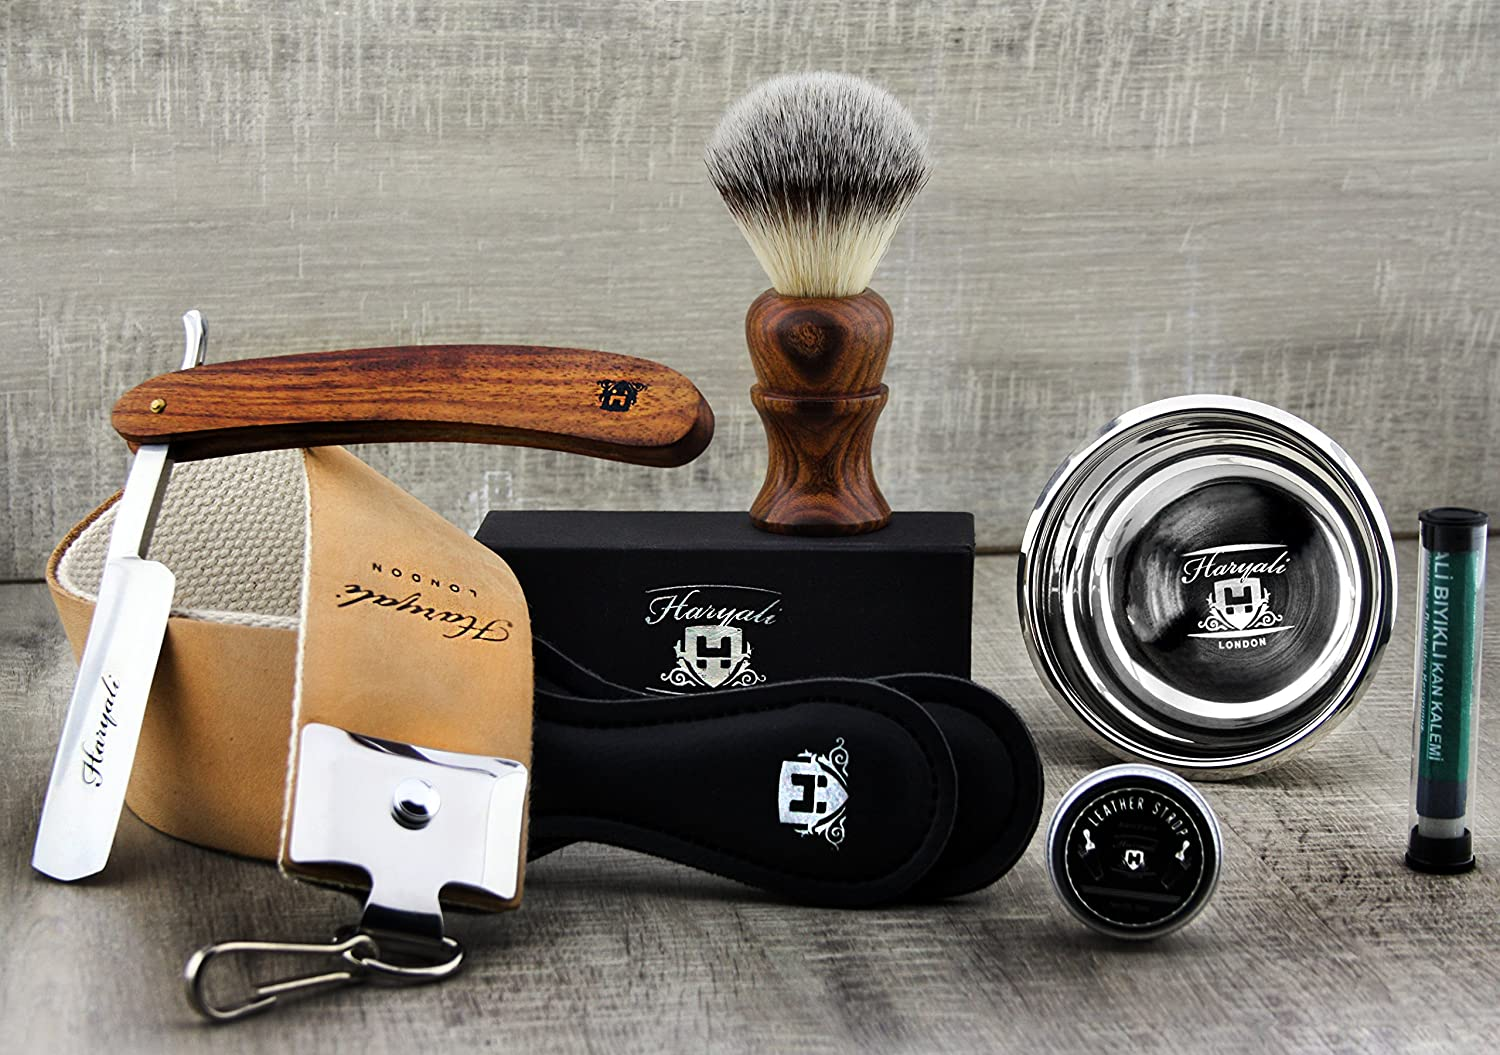 5 Piece Vintage Style Men's Shaving Set With Synthetic Hair Shaving Brush, Cut Throat Razor /Barber Style Razor, Double XL Pure Leather Strop & Sharping Paste , Stainless Steel Bowl +FREE Aluminyum PENCIL STICK. Perfect Set for Wet Shaving. Haryali Lon